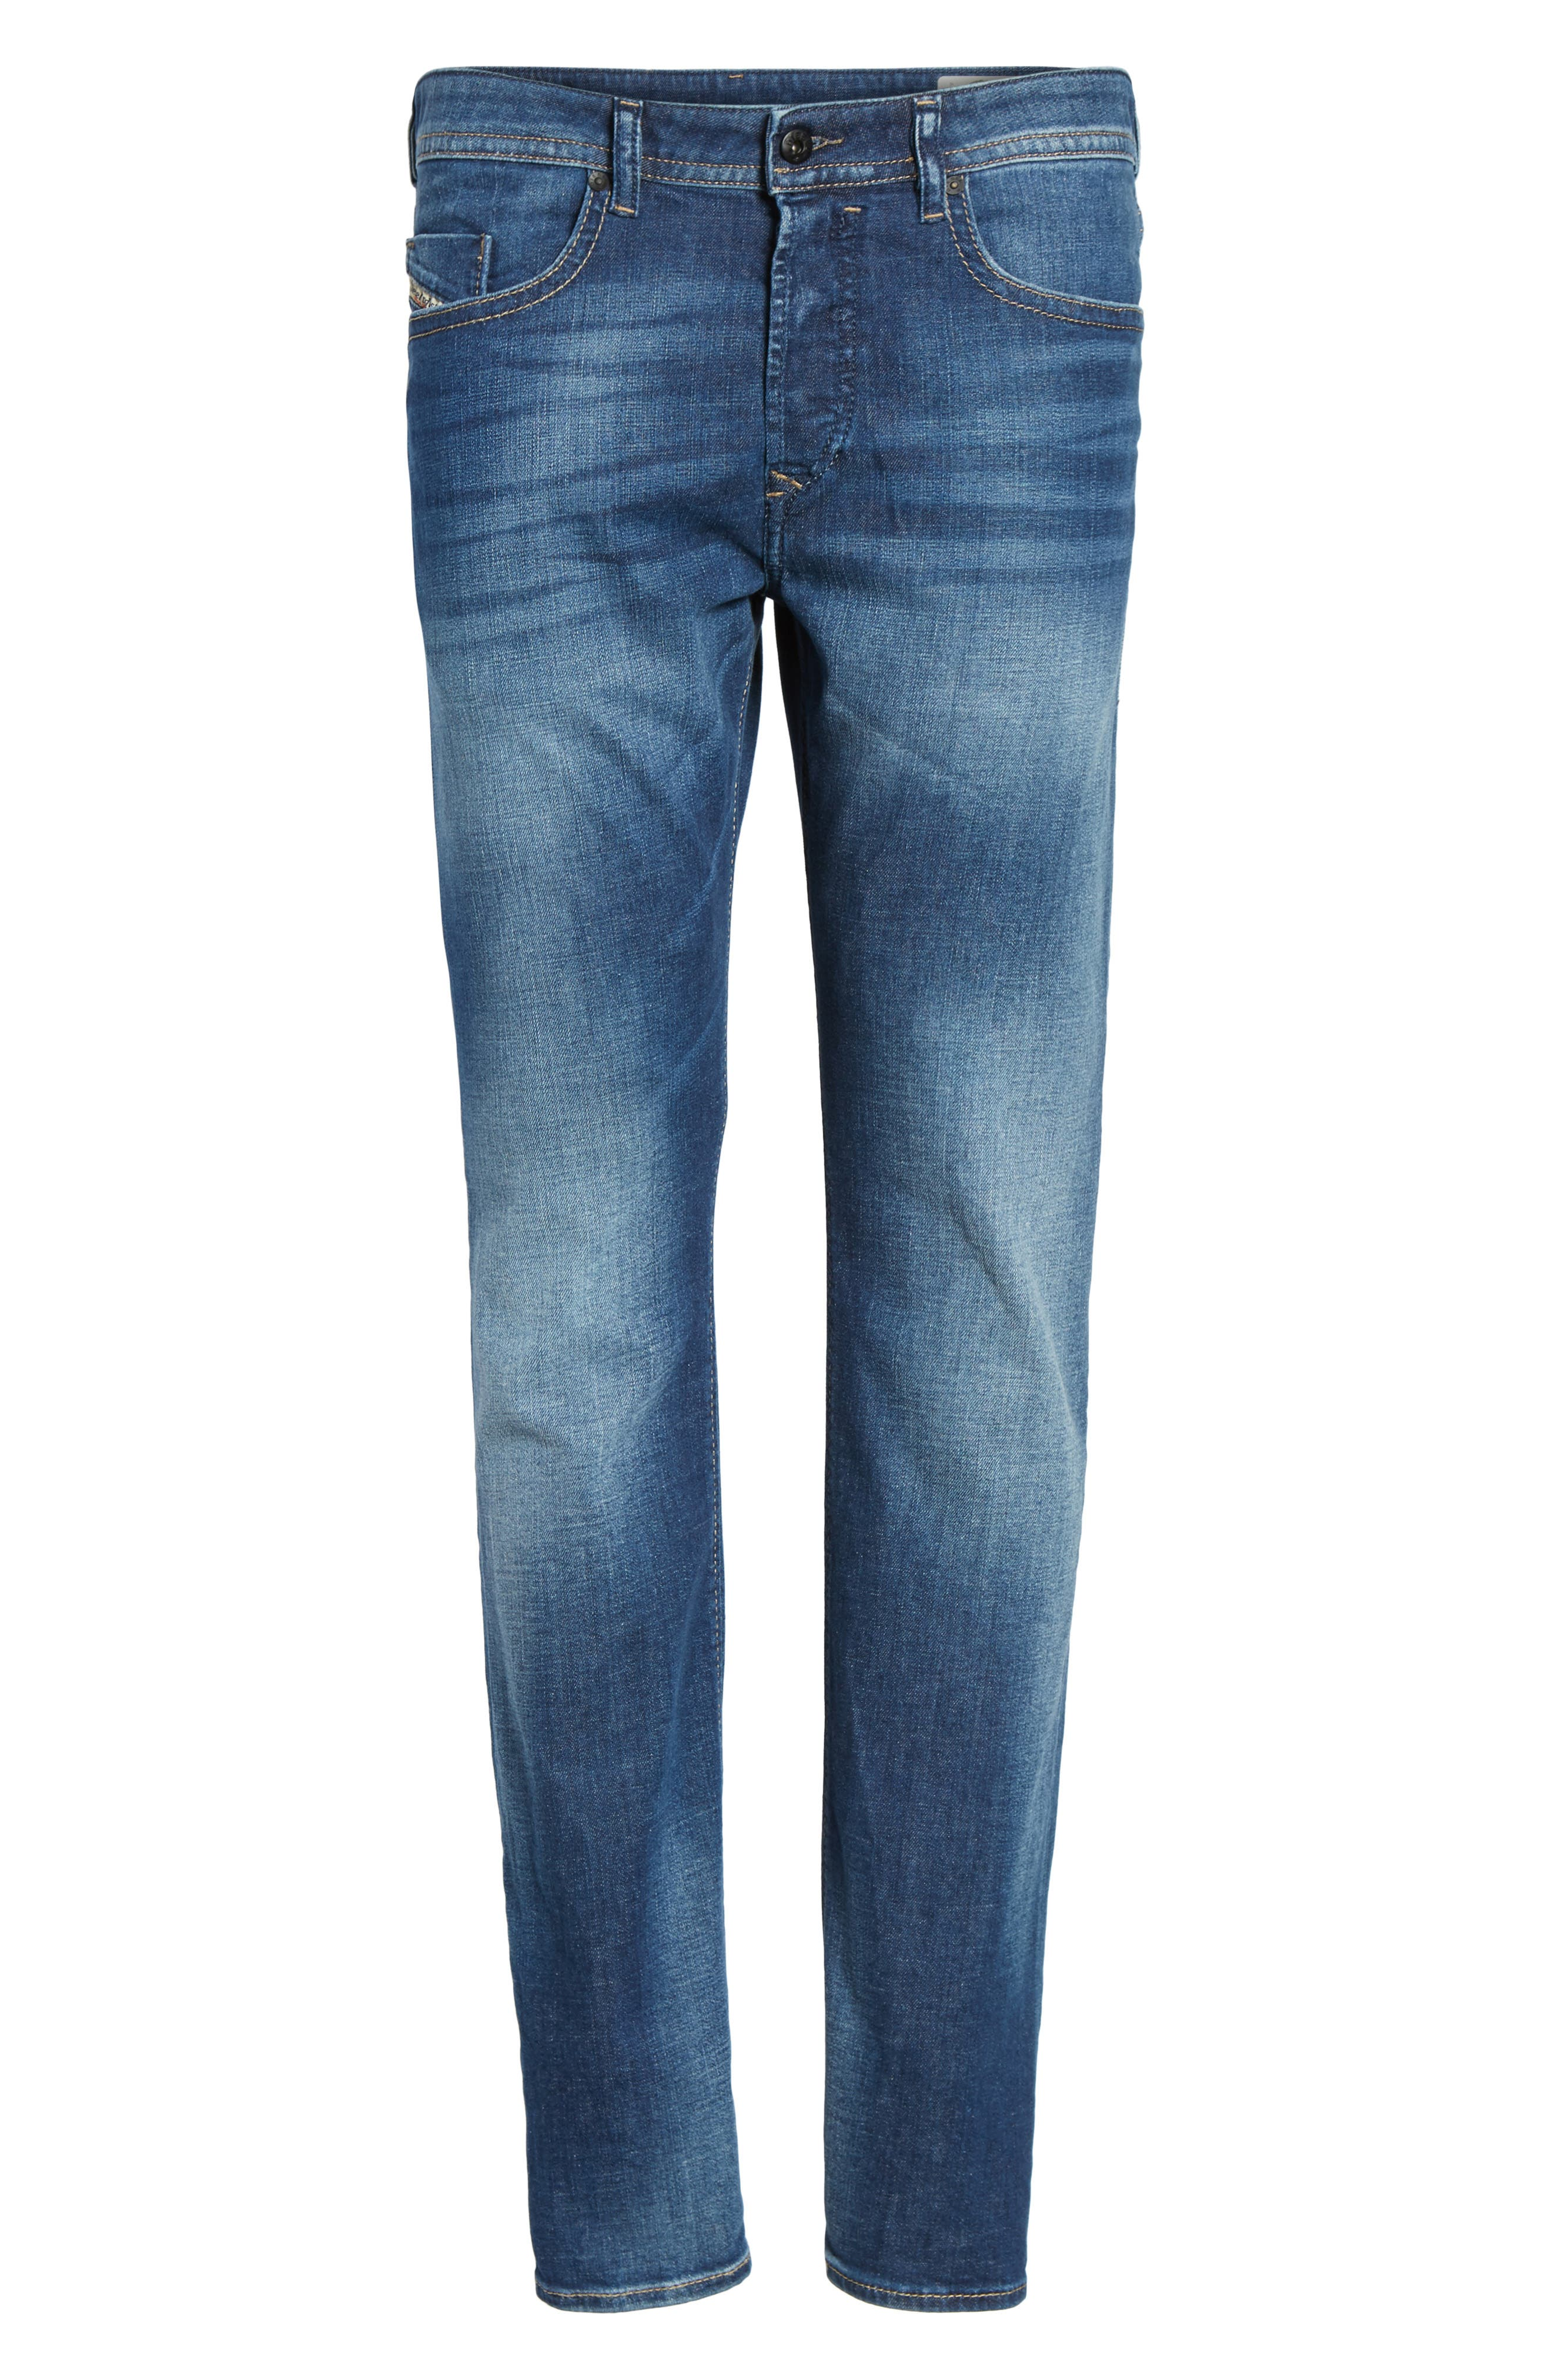 Buster Slim Straight Leg Jeans,                             Alternate thumbnail 6, color,                             084Gr